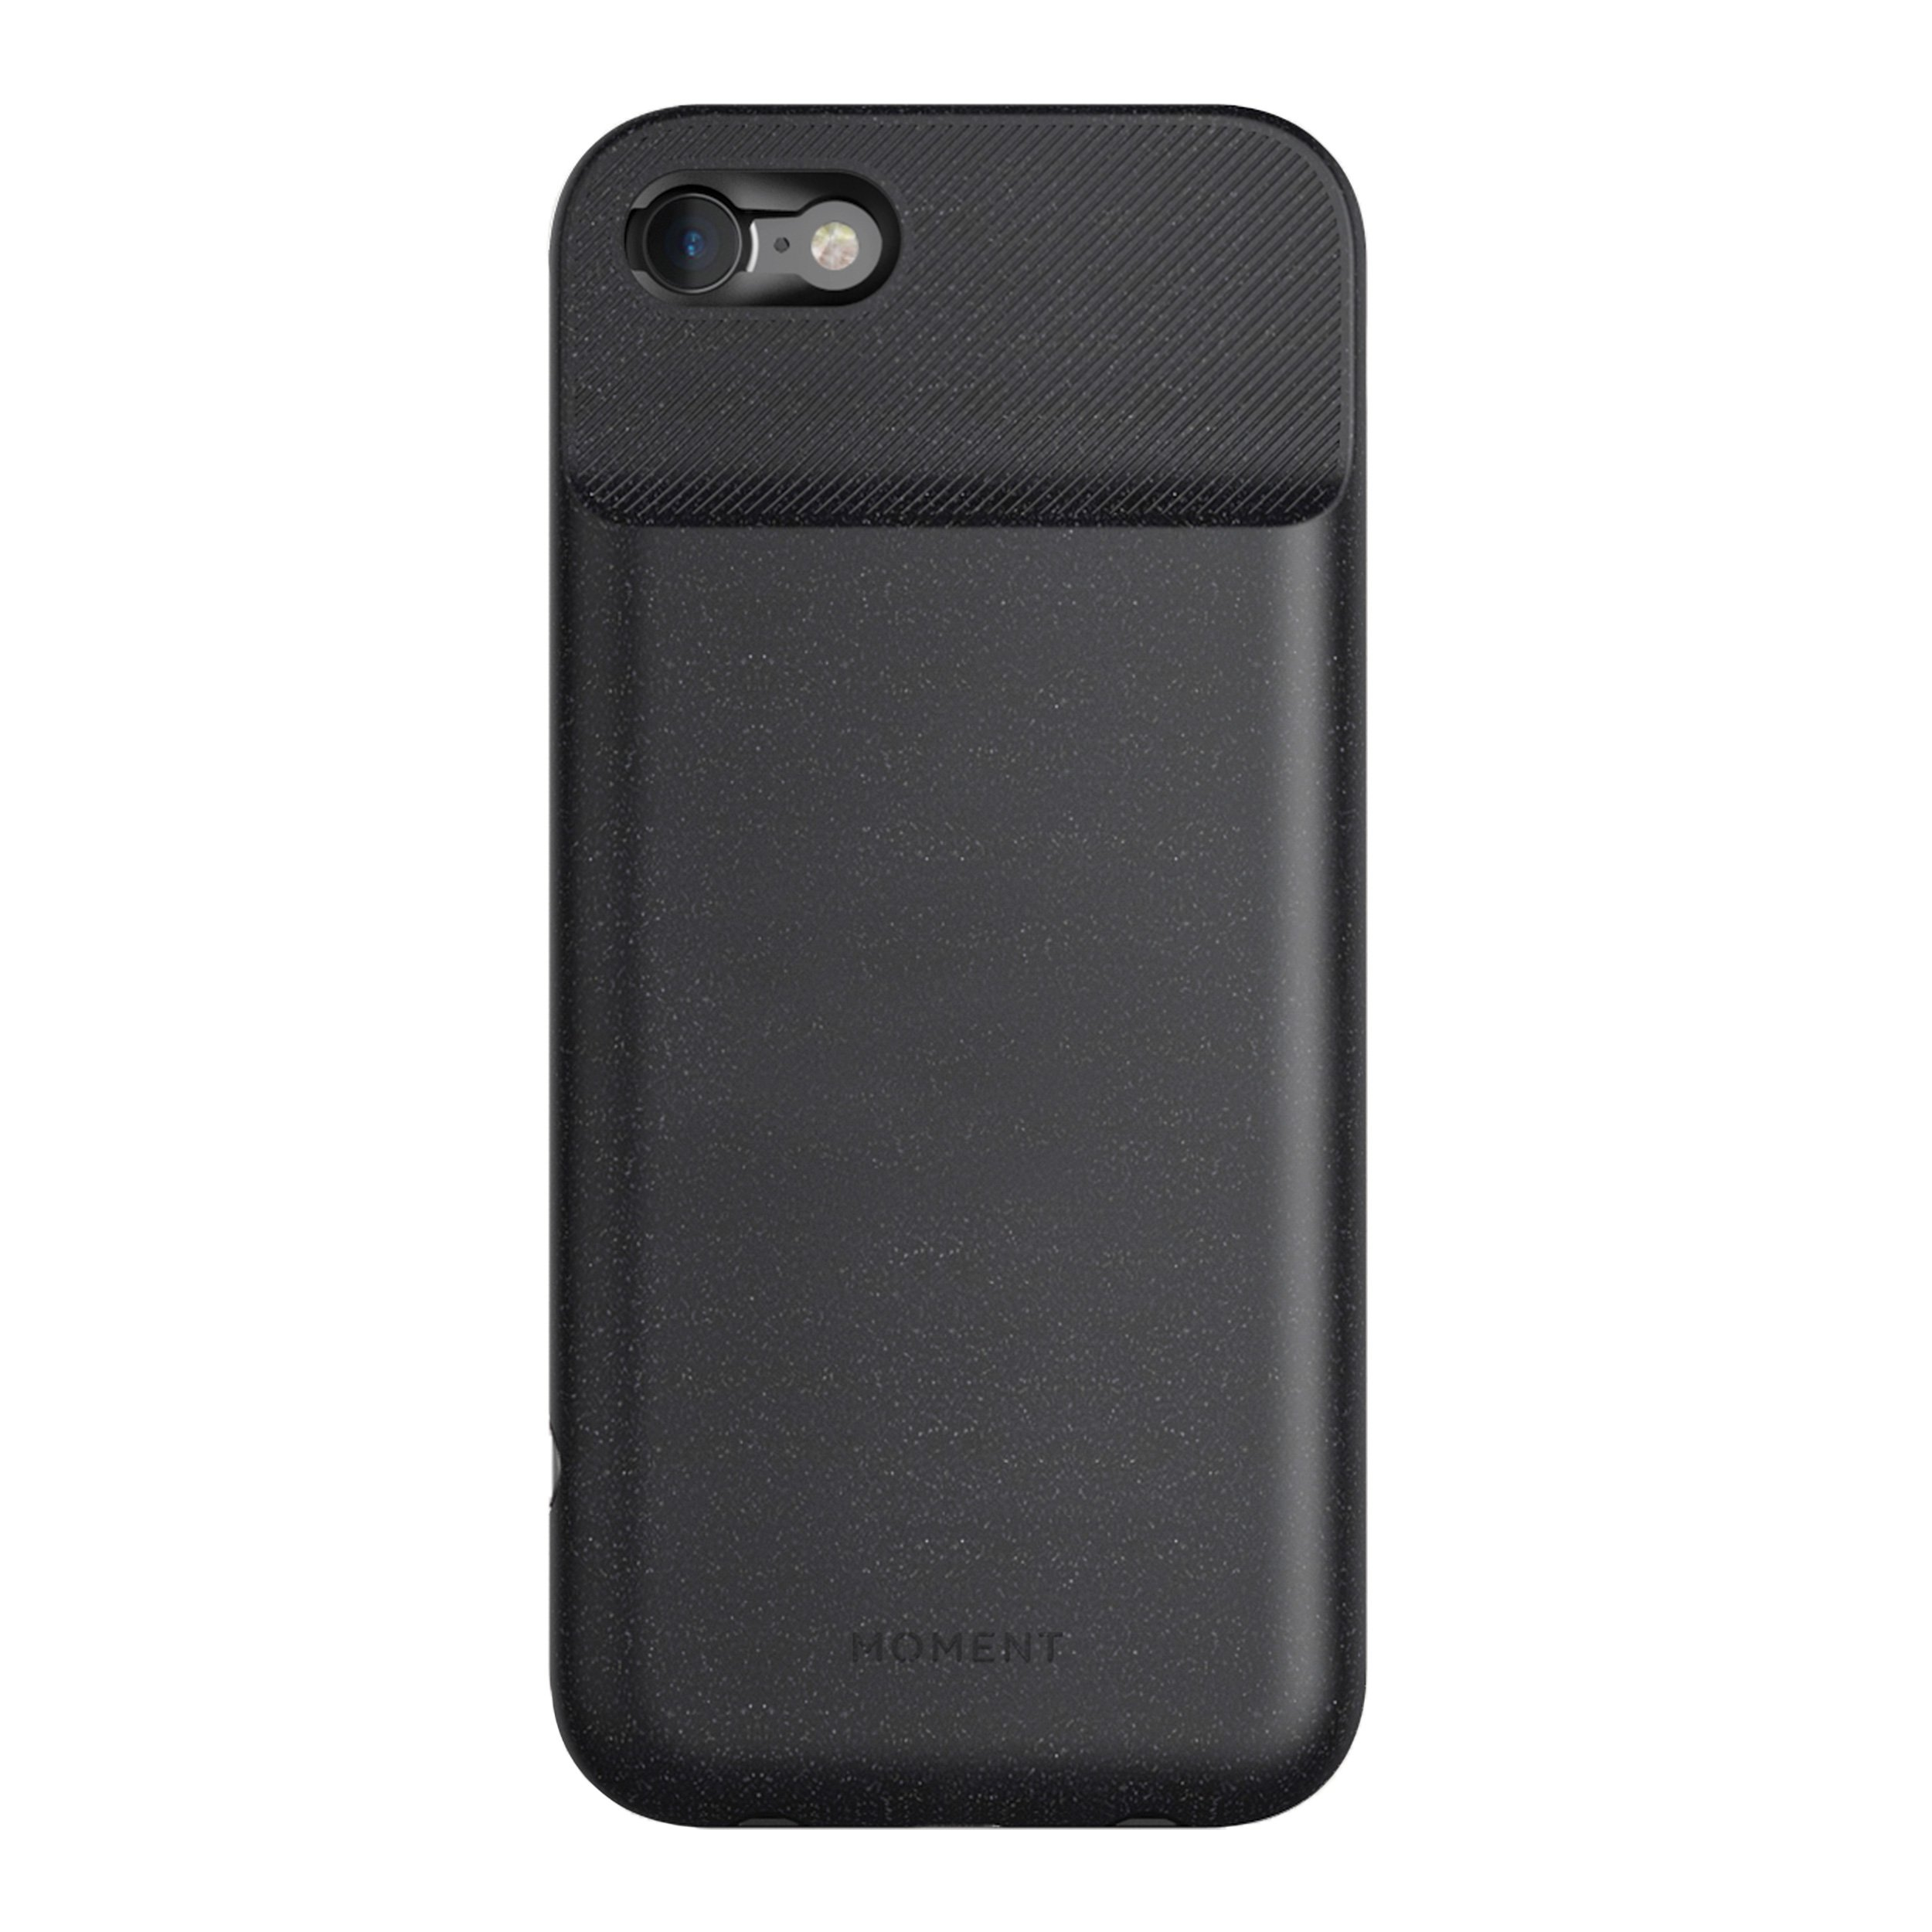 Moment - Battery Photography Case - iPhone 8 and iPhone 7 - Protect, Charge, and take Better Pictures. by Moment